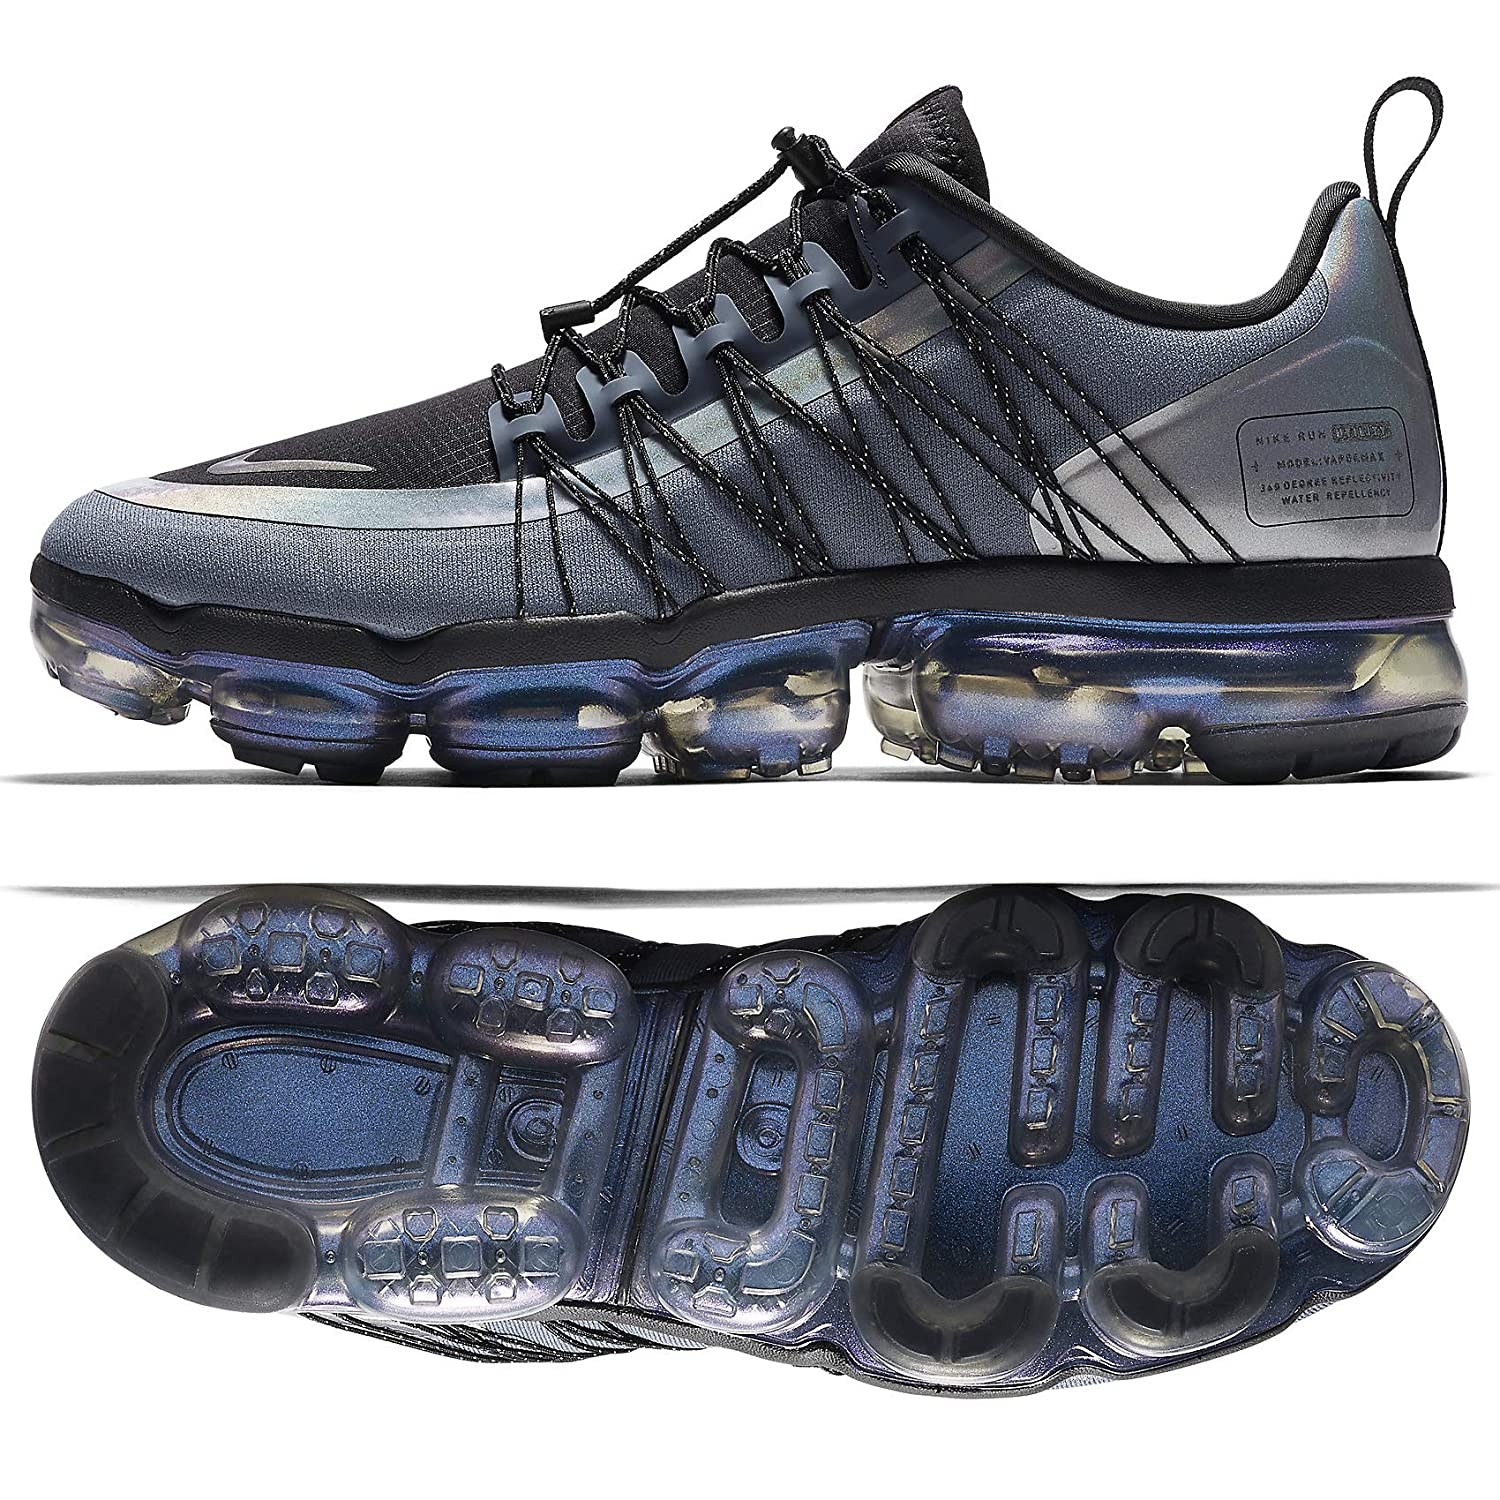 Nike Air Vapormax 2019 Mens Roading Running Shoes (10.5, 青 Dusk/黒/Anthracite)